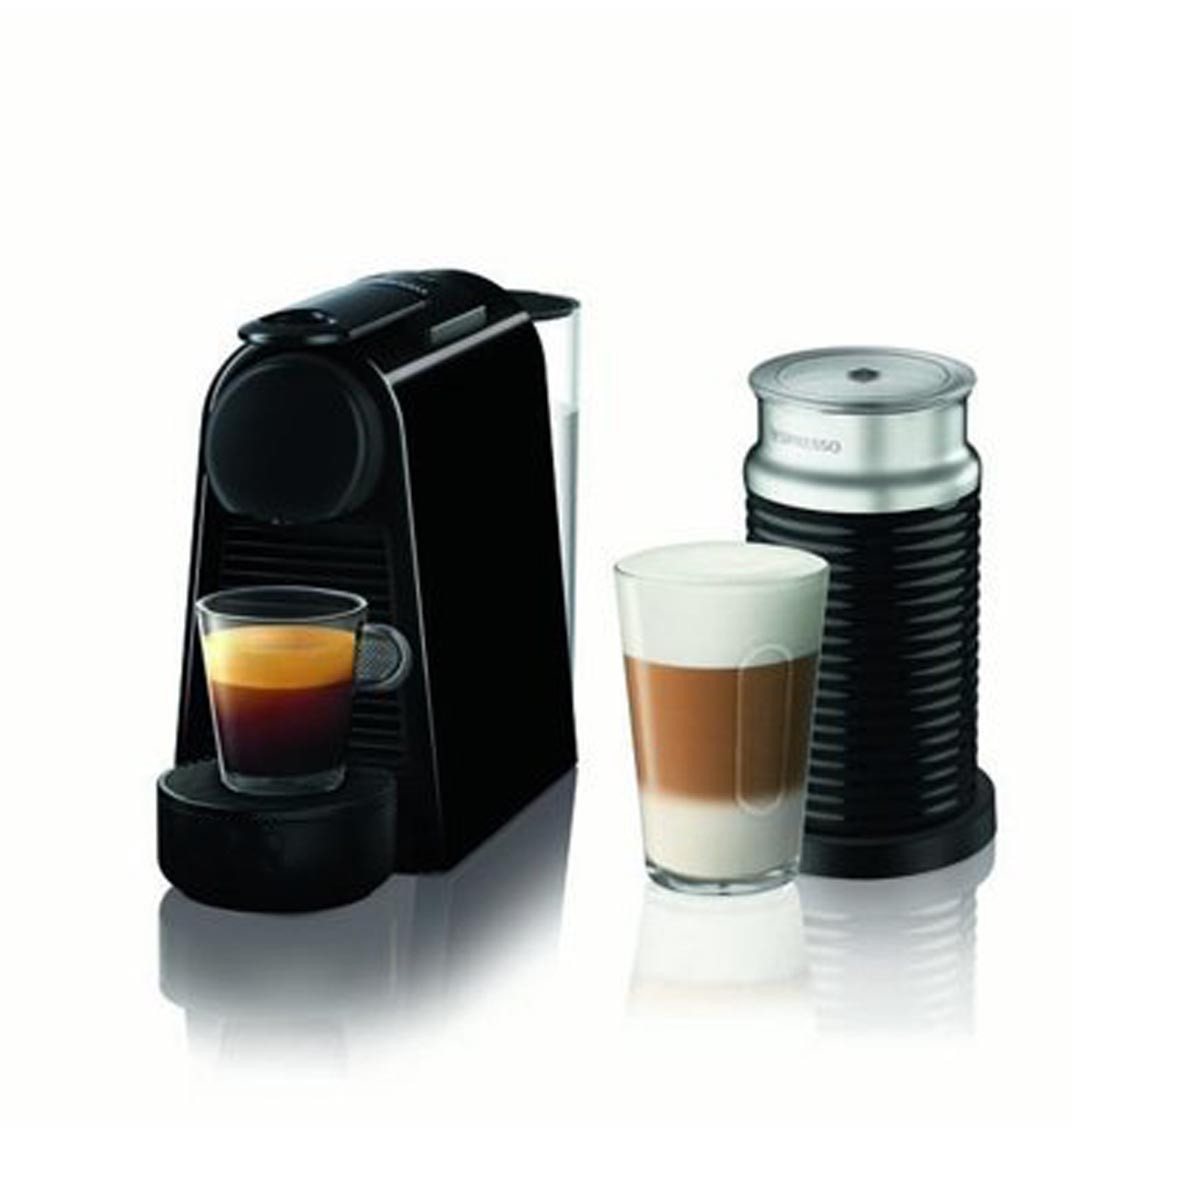 Nespresso Essenza Mini + Aeroccino3 Coffee Machine by Magimix in Black